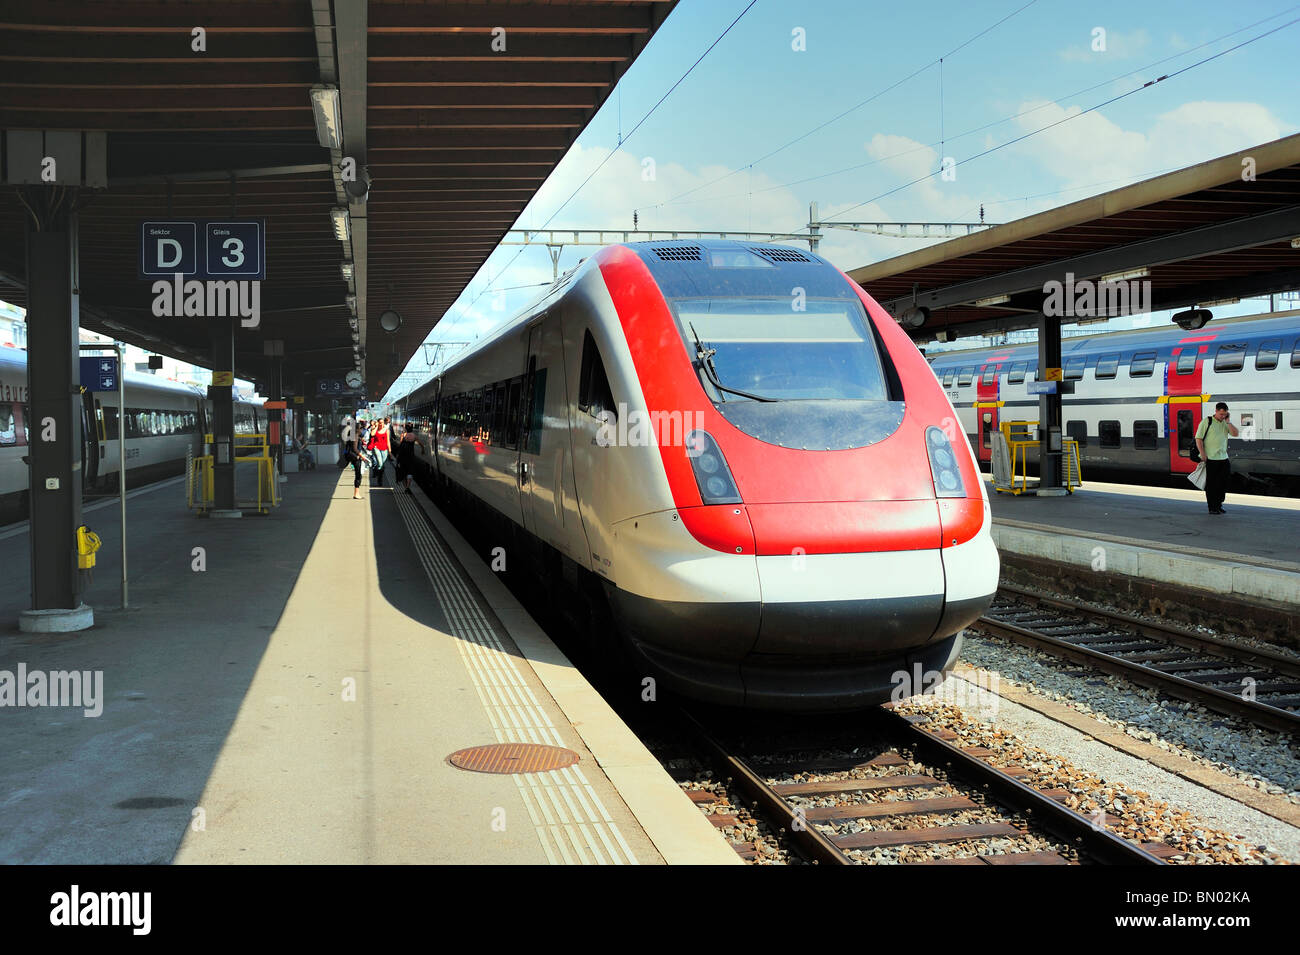 The railway station at Biel (Bienne), Switzerland, with an intercity train waiting at the platform - Stock Image